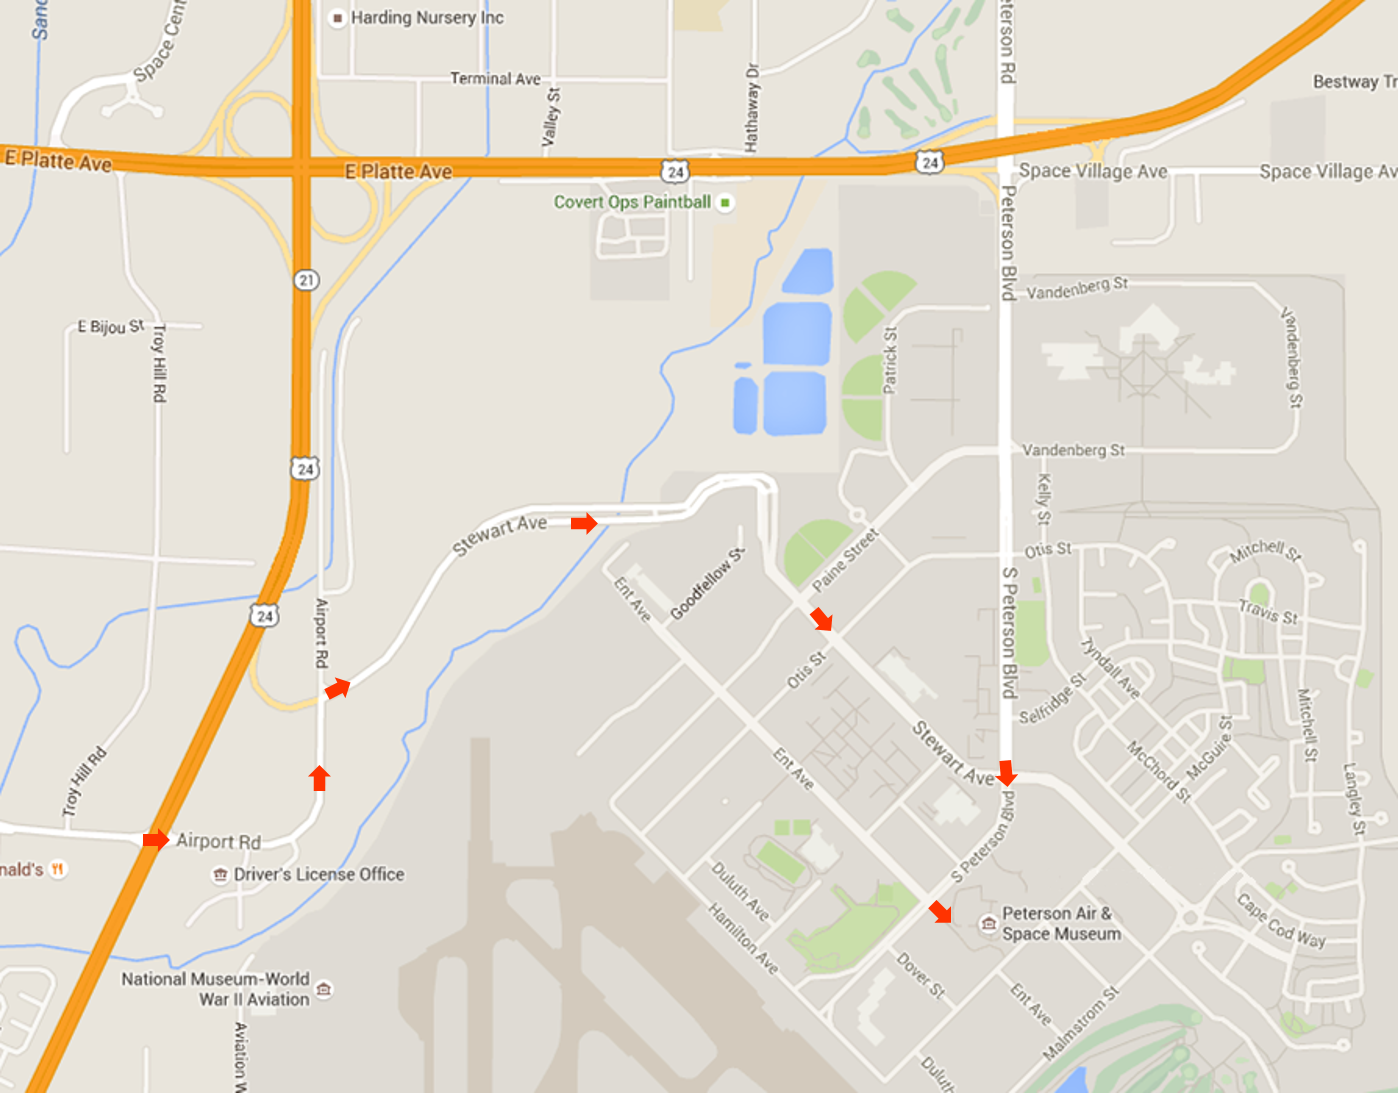 Driving Route to Peterson Air & Space Museum